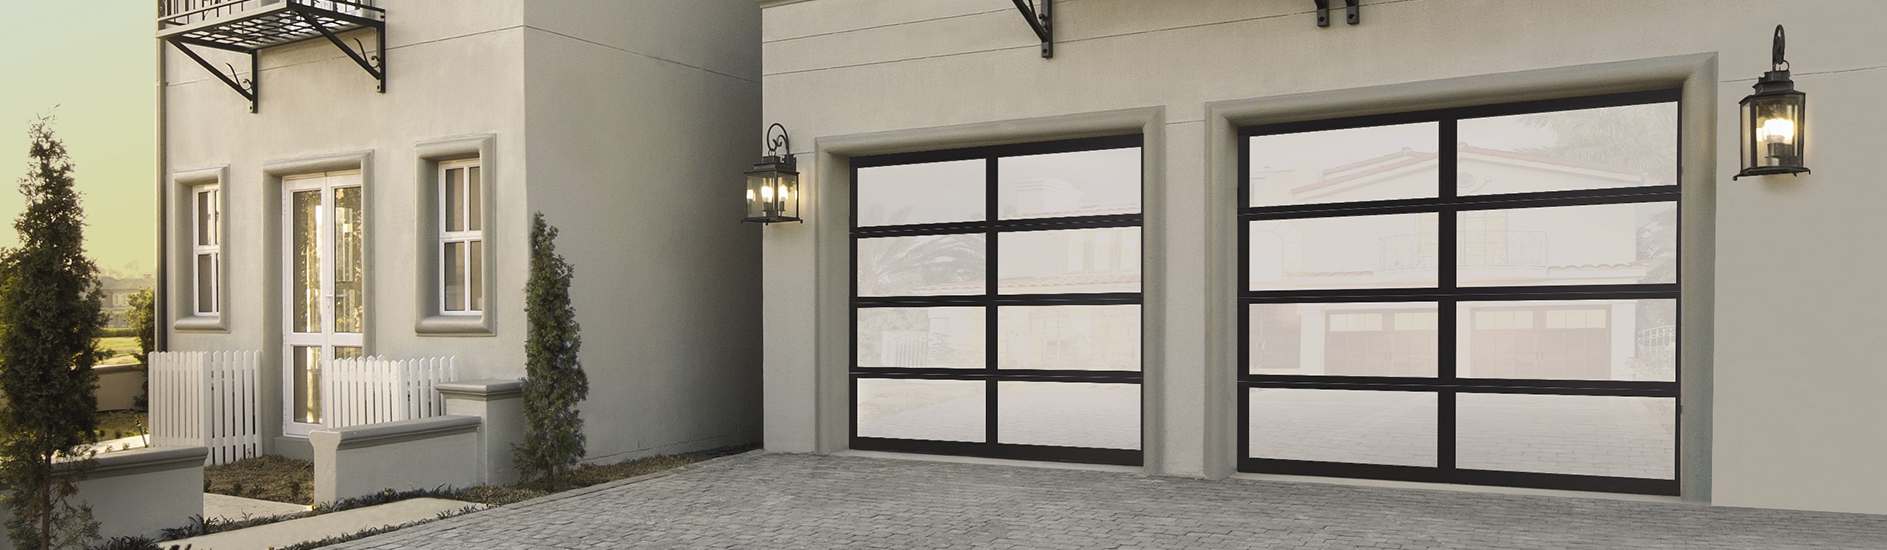 Aluminum Glass Garage Door 8850